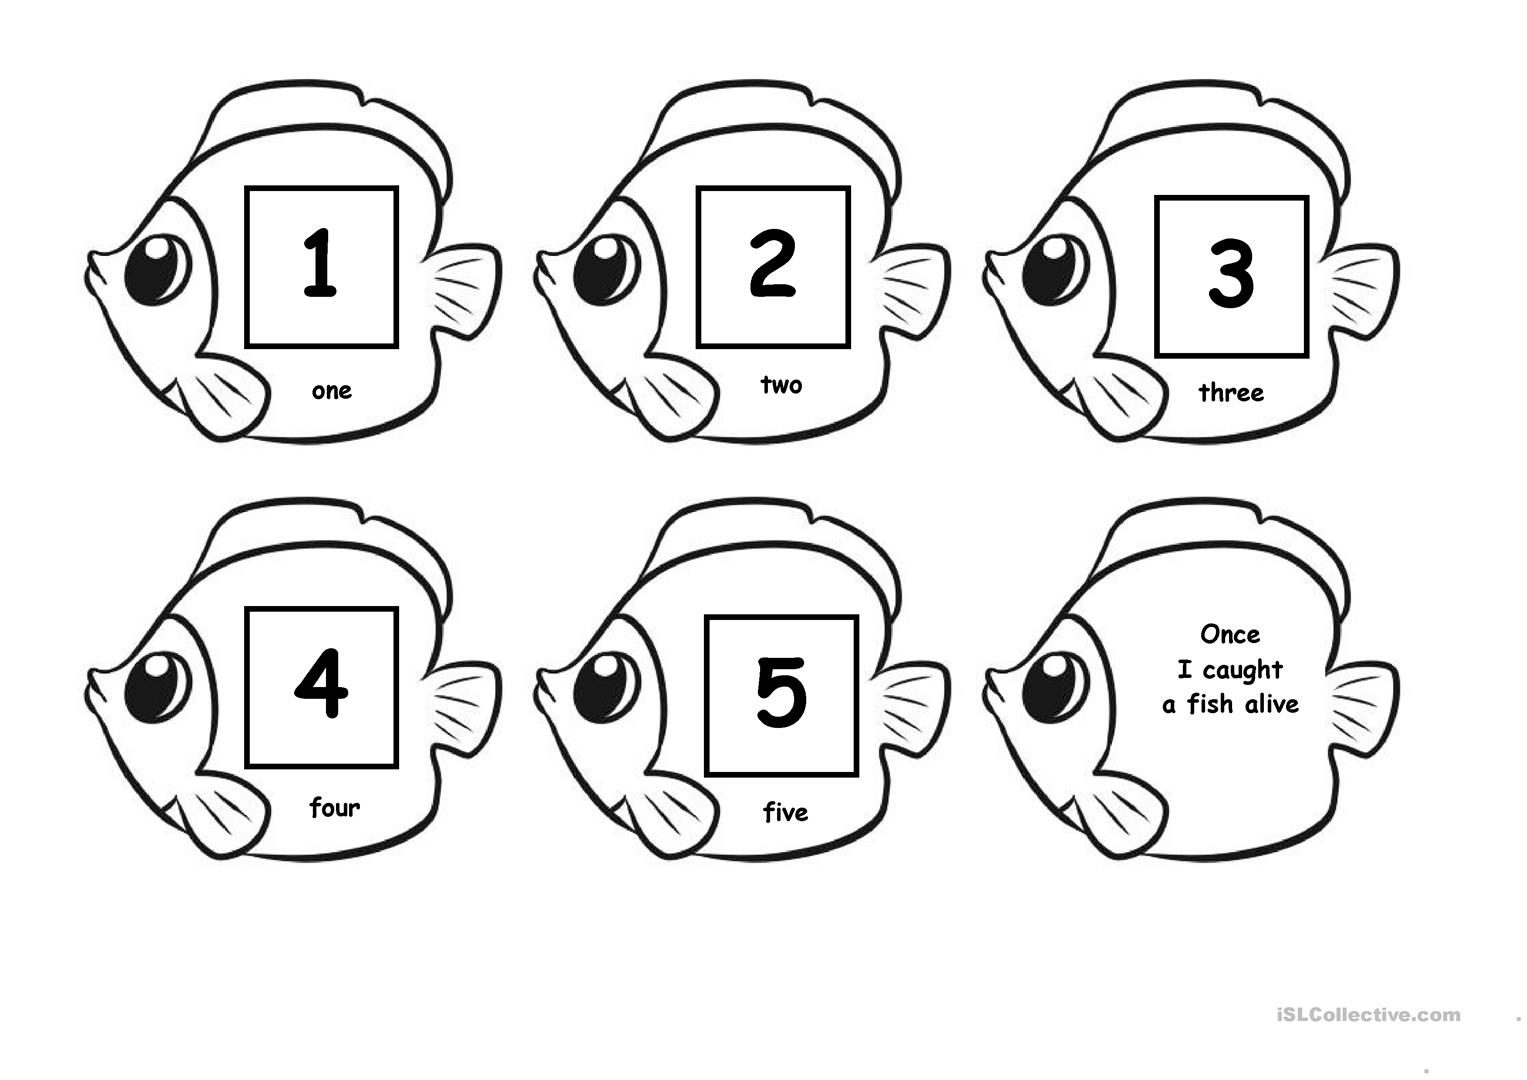 1, 2, 3, 4, 5... Once I caught a fish a live worksheet